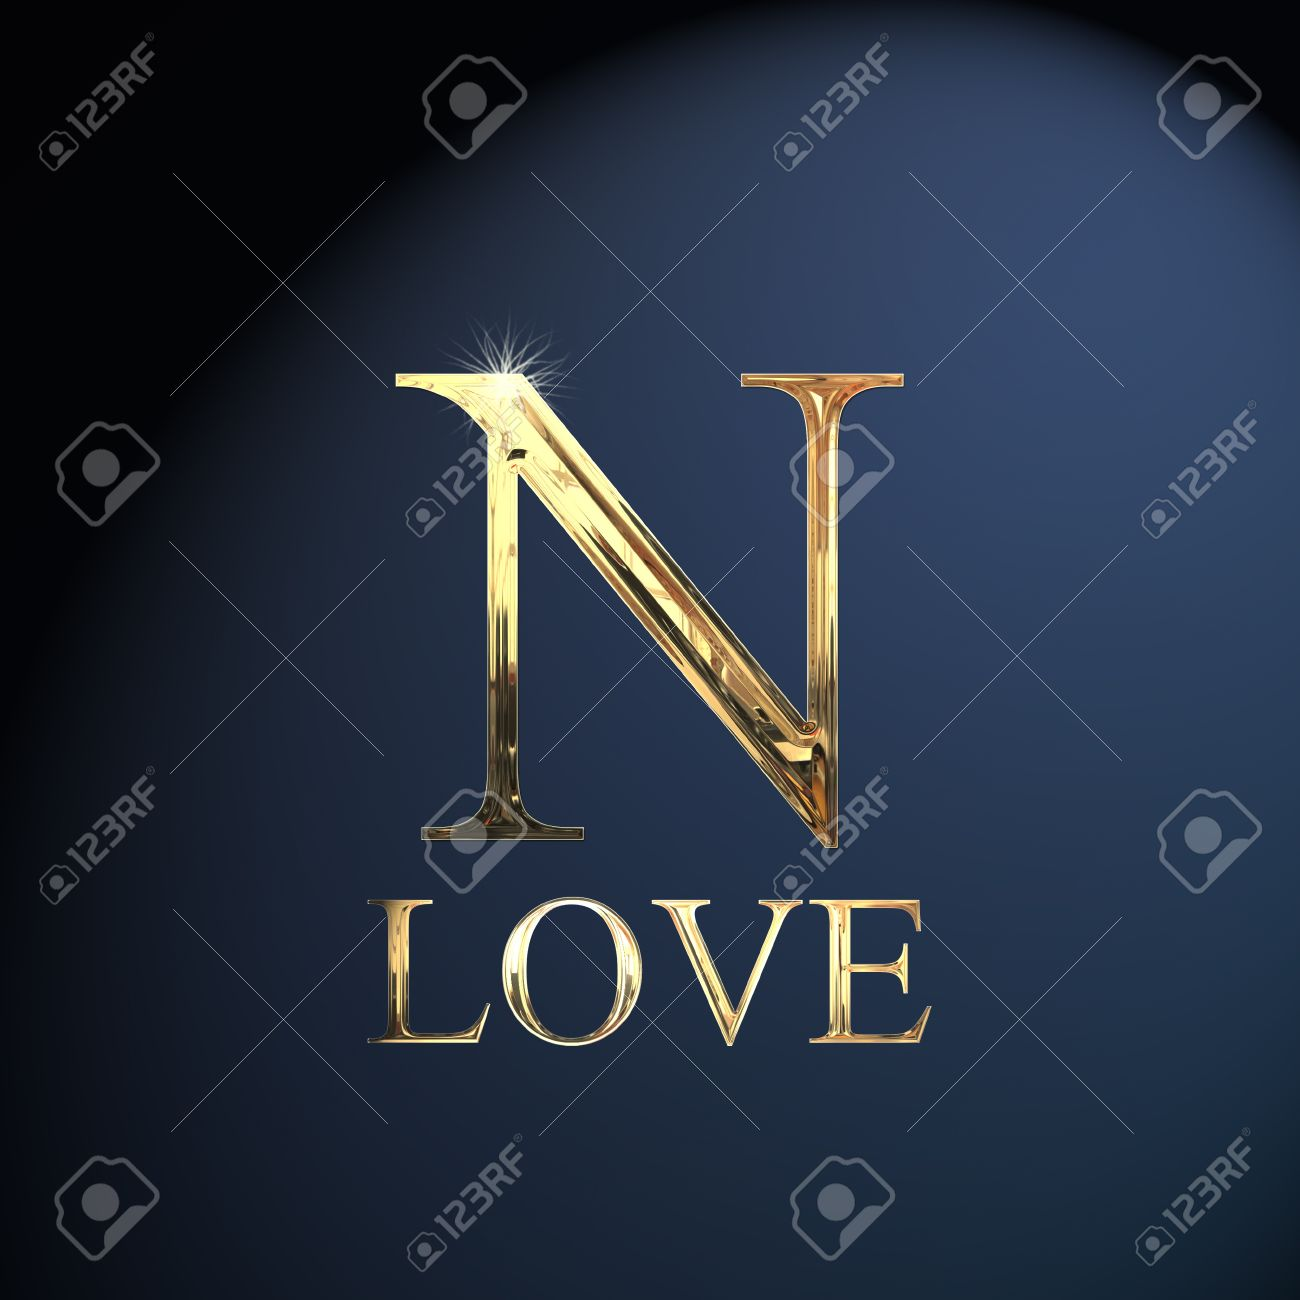 download r love n wallpaper gallery